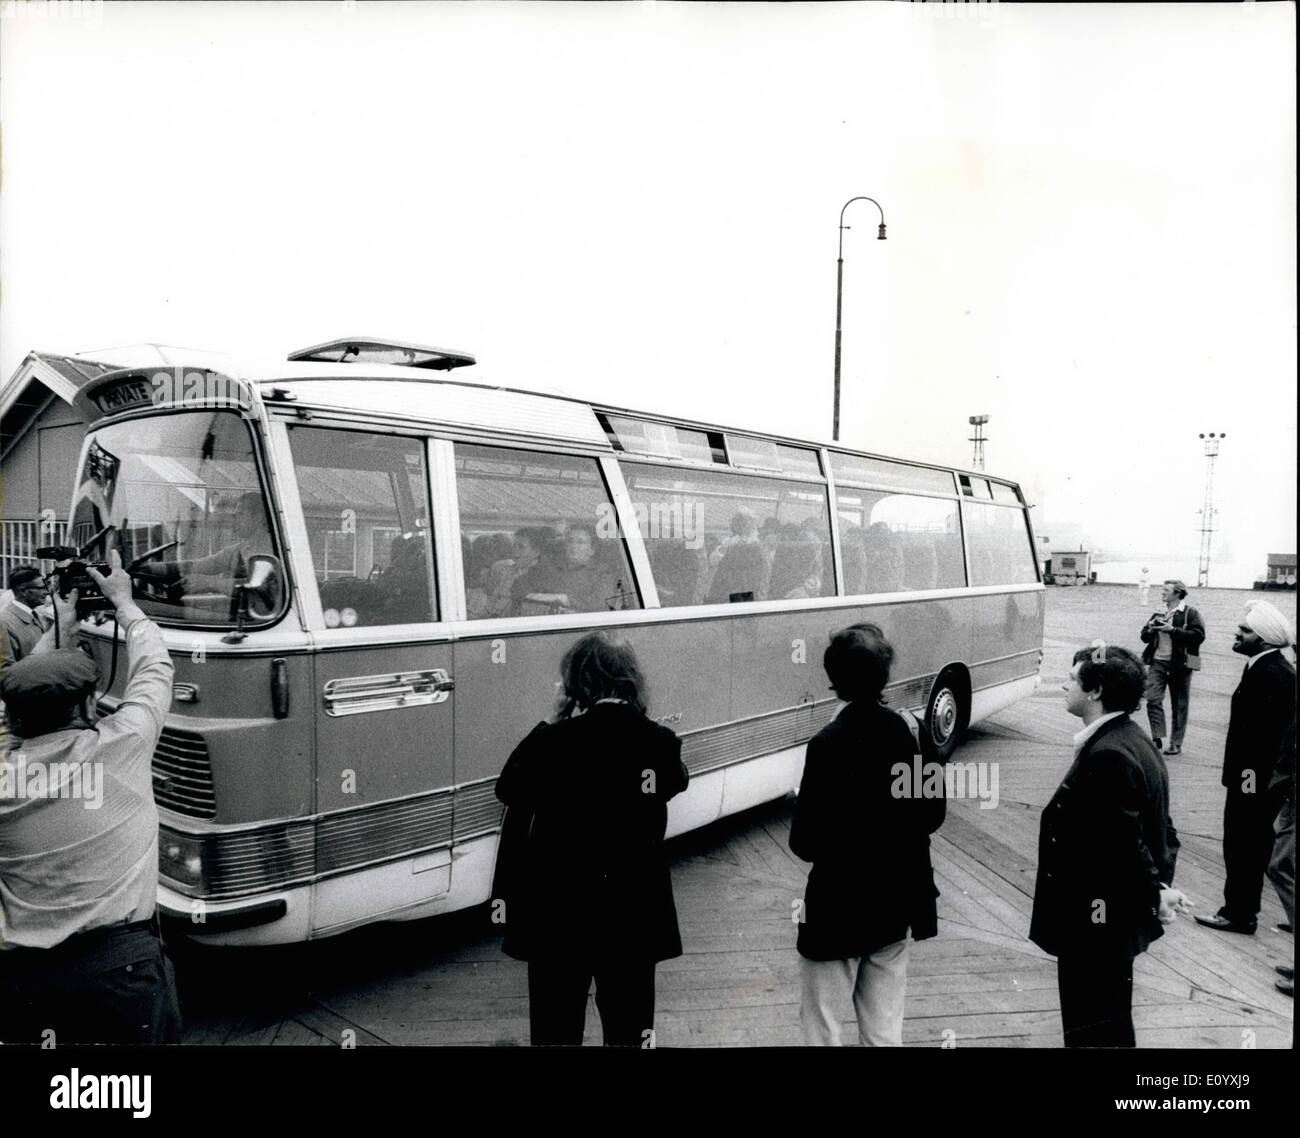 Oct. 04, 1971 - October 4th, 1971 Spy Russians sail home in cruise liner. About 70 of the 90 officials expelled by Britain for spying sailed home yesterday in a Russian cruise liner commandeered by the Soviet Embassy. It was the 8.486-ton Baltika, which left Tilbury. Photo Shows: A coach loaded of Russians from the Soviet Embassy arriving at Tilbury yesterday. - Stock Image